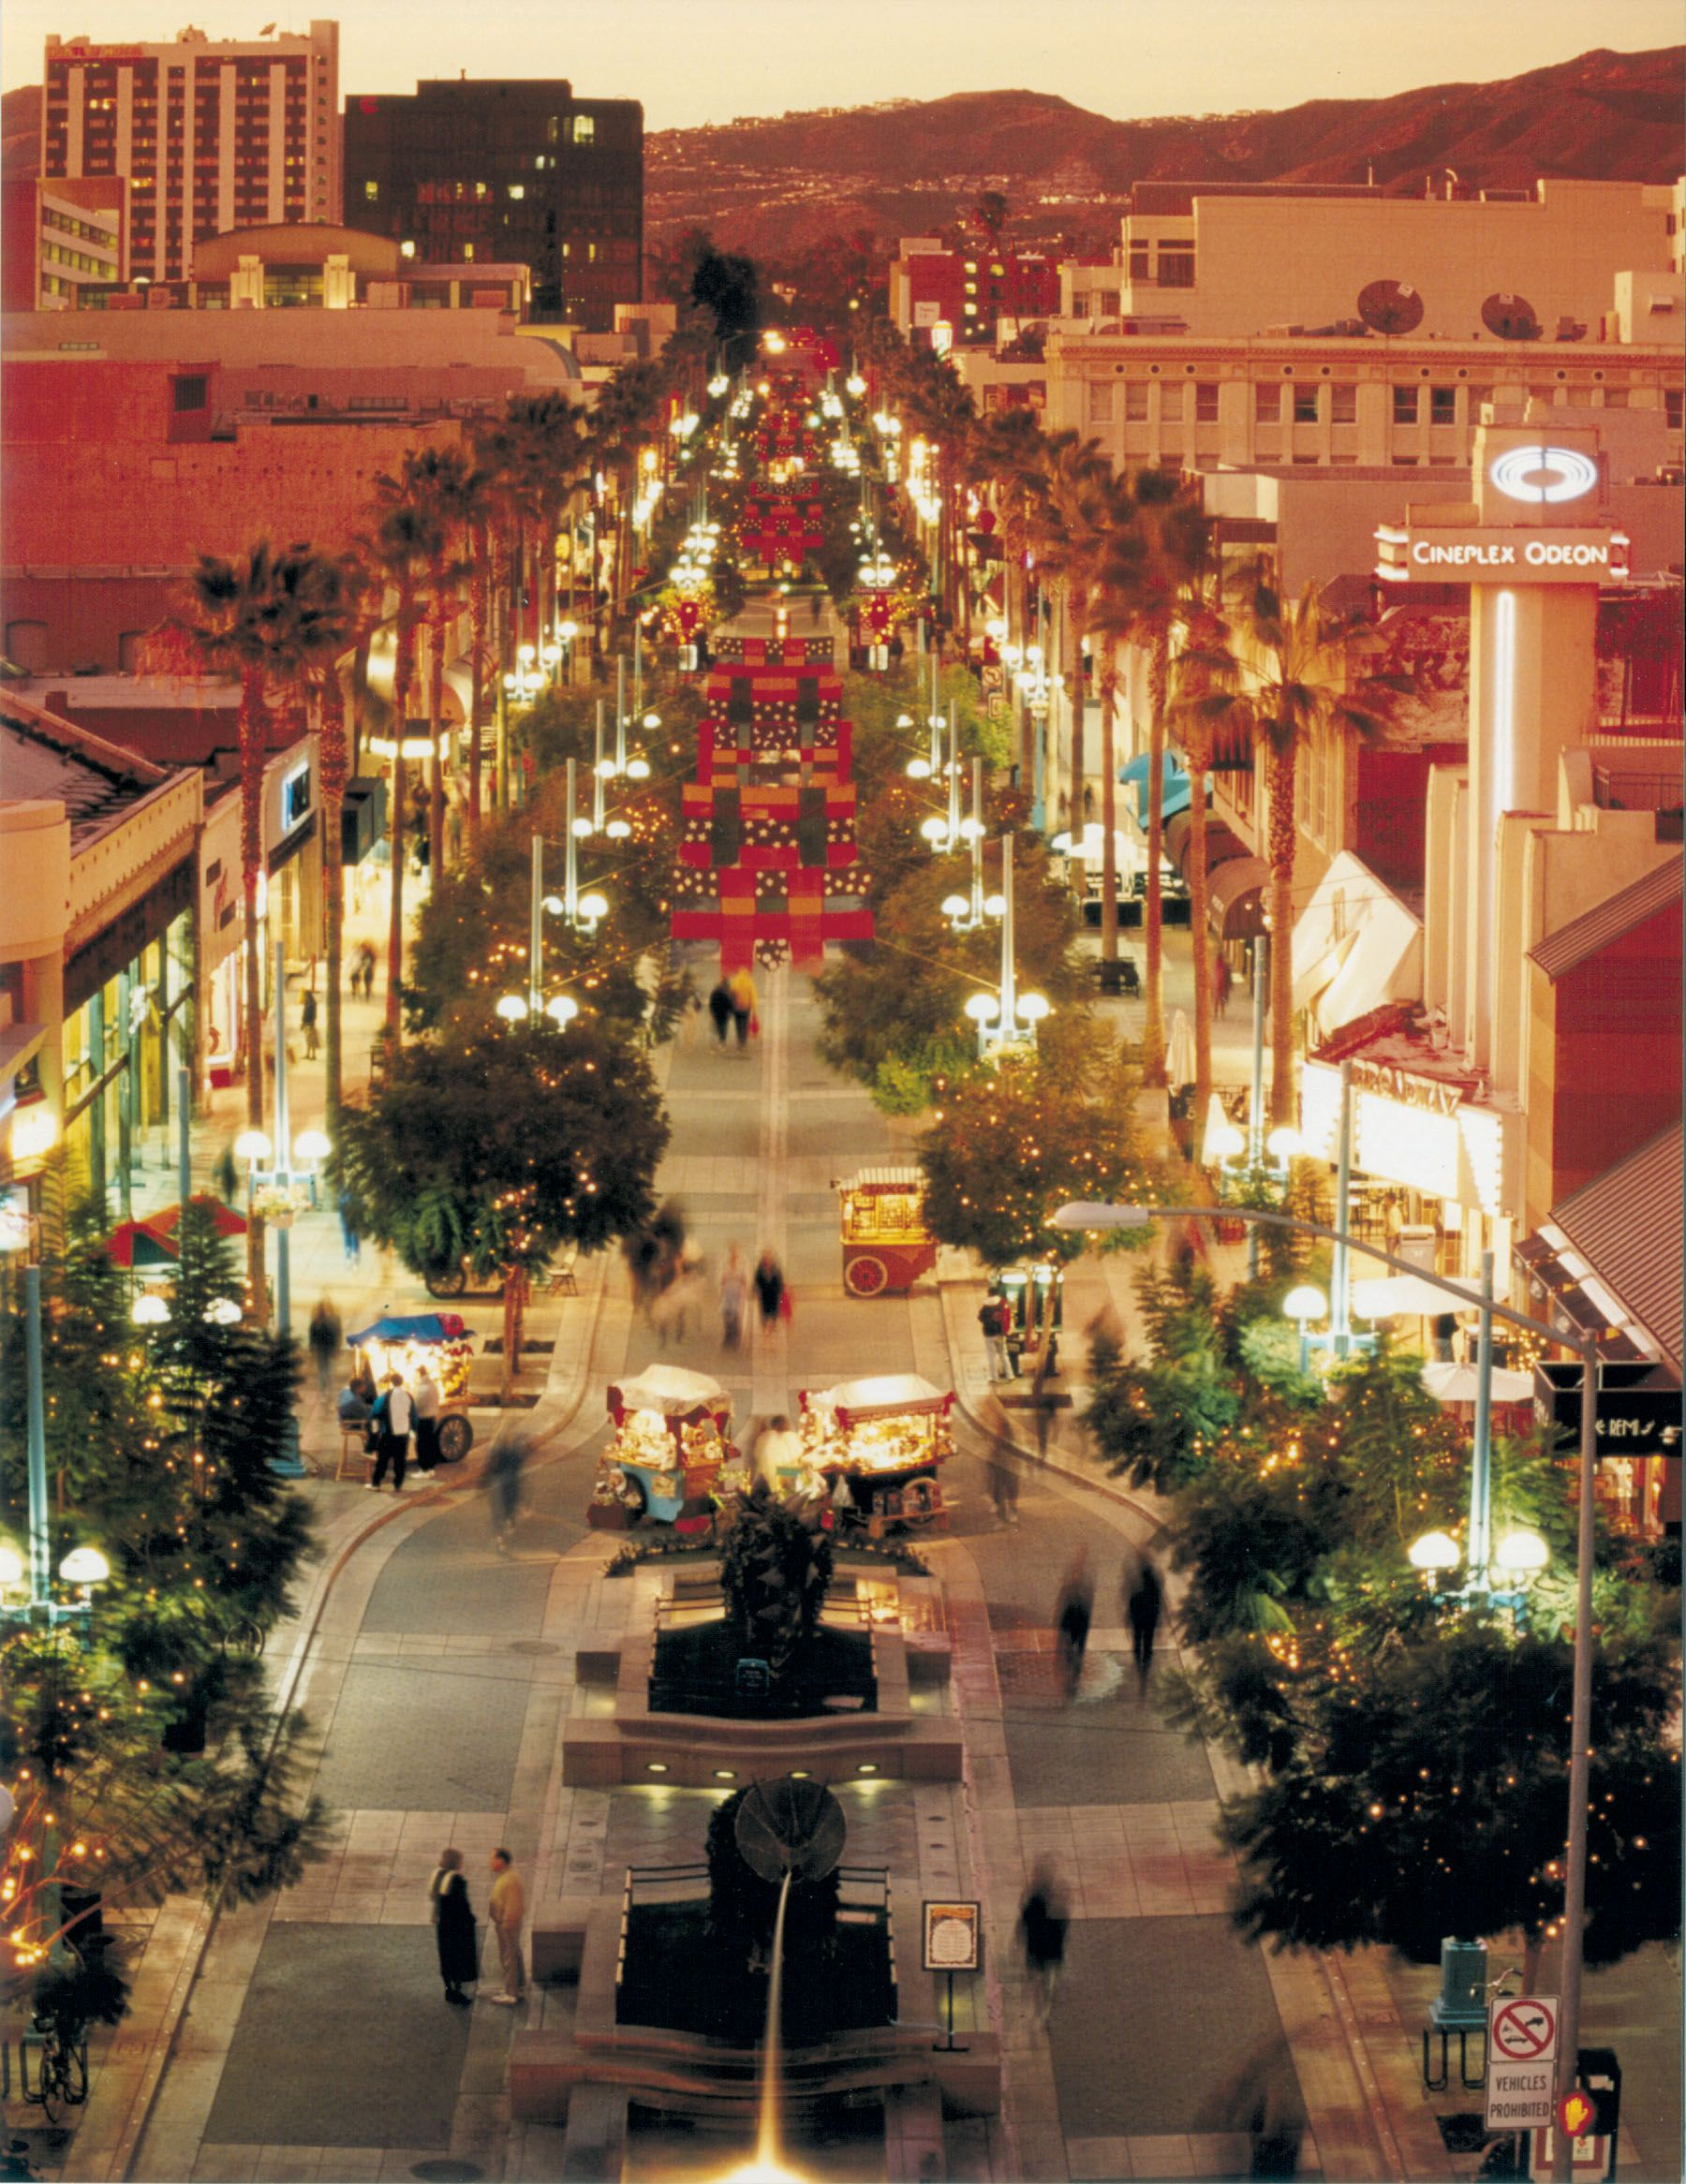 3rd Street Promenade Hours >> 3rd Street Promenade In Santa Monica Even Though It S Crowded Most